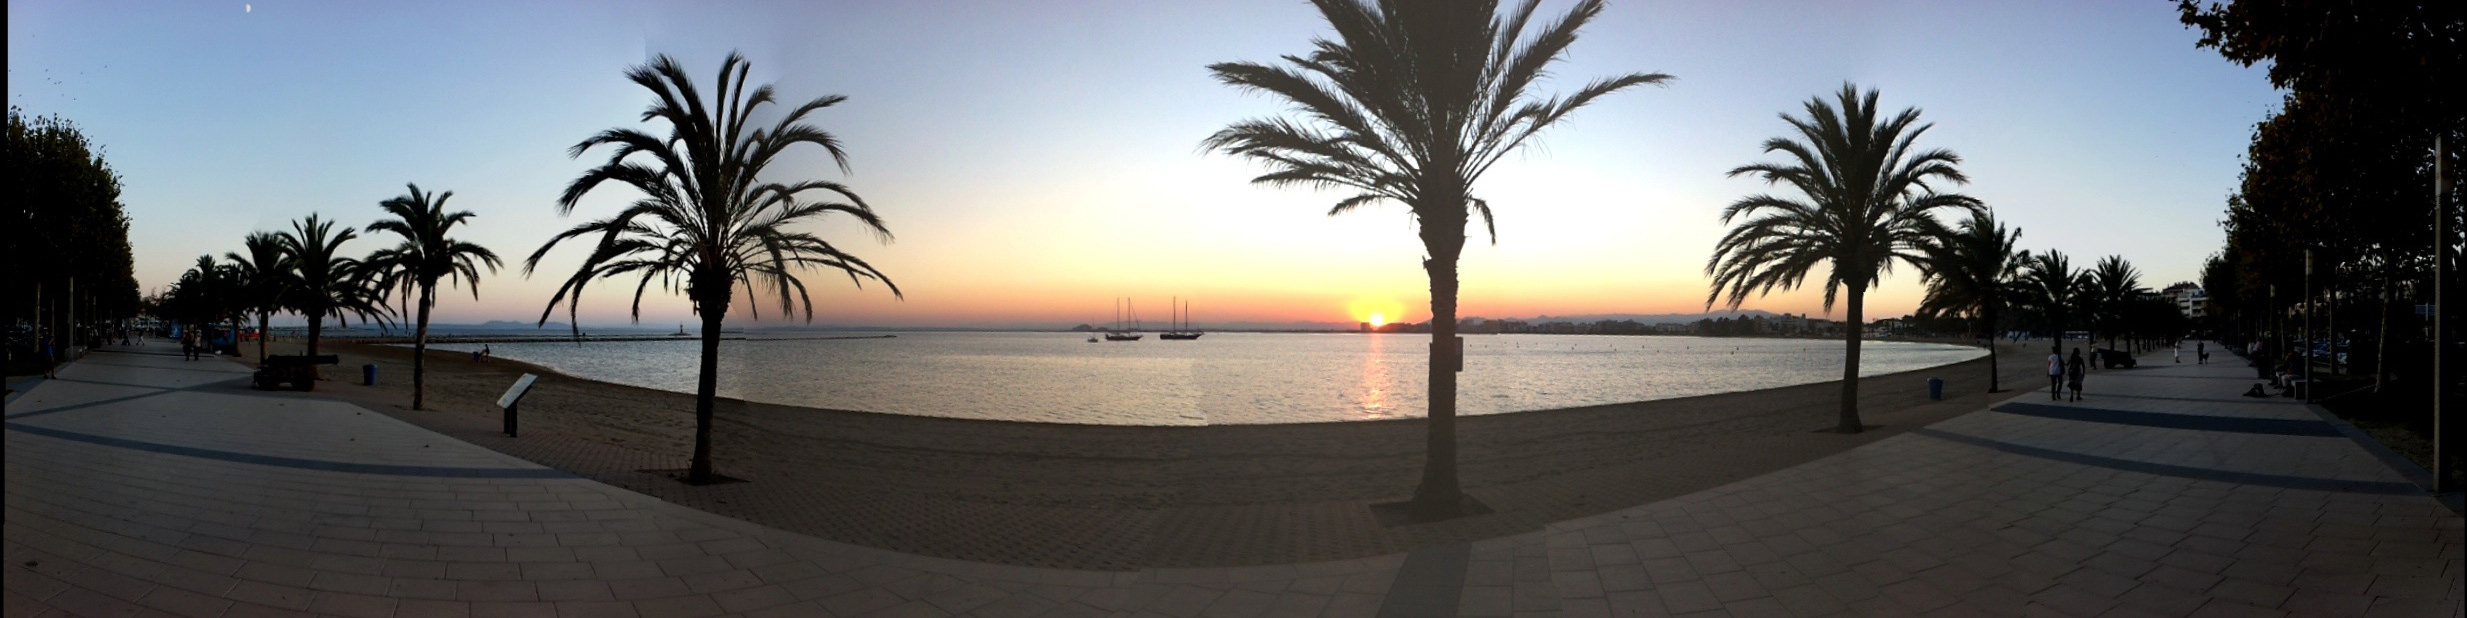 pano-rosas-sundown.jpg